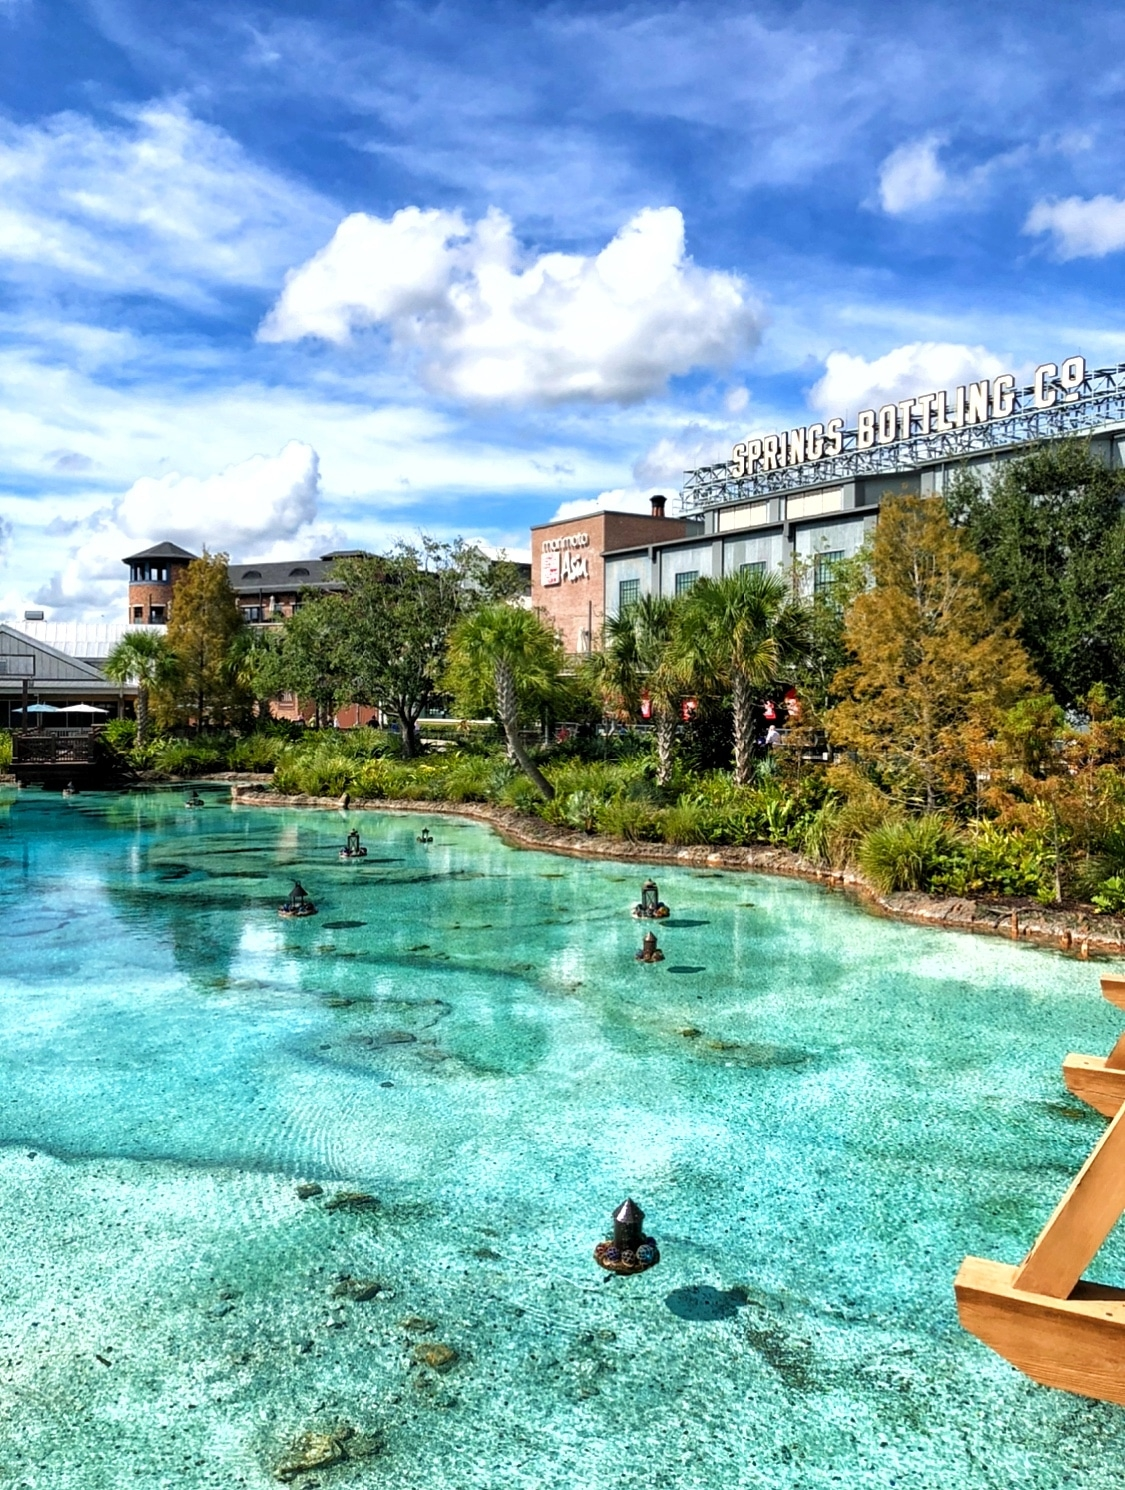 Disney Springs at the Walt Disney World Resort